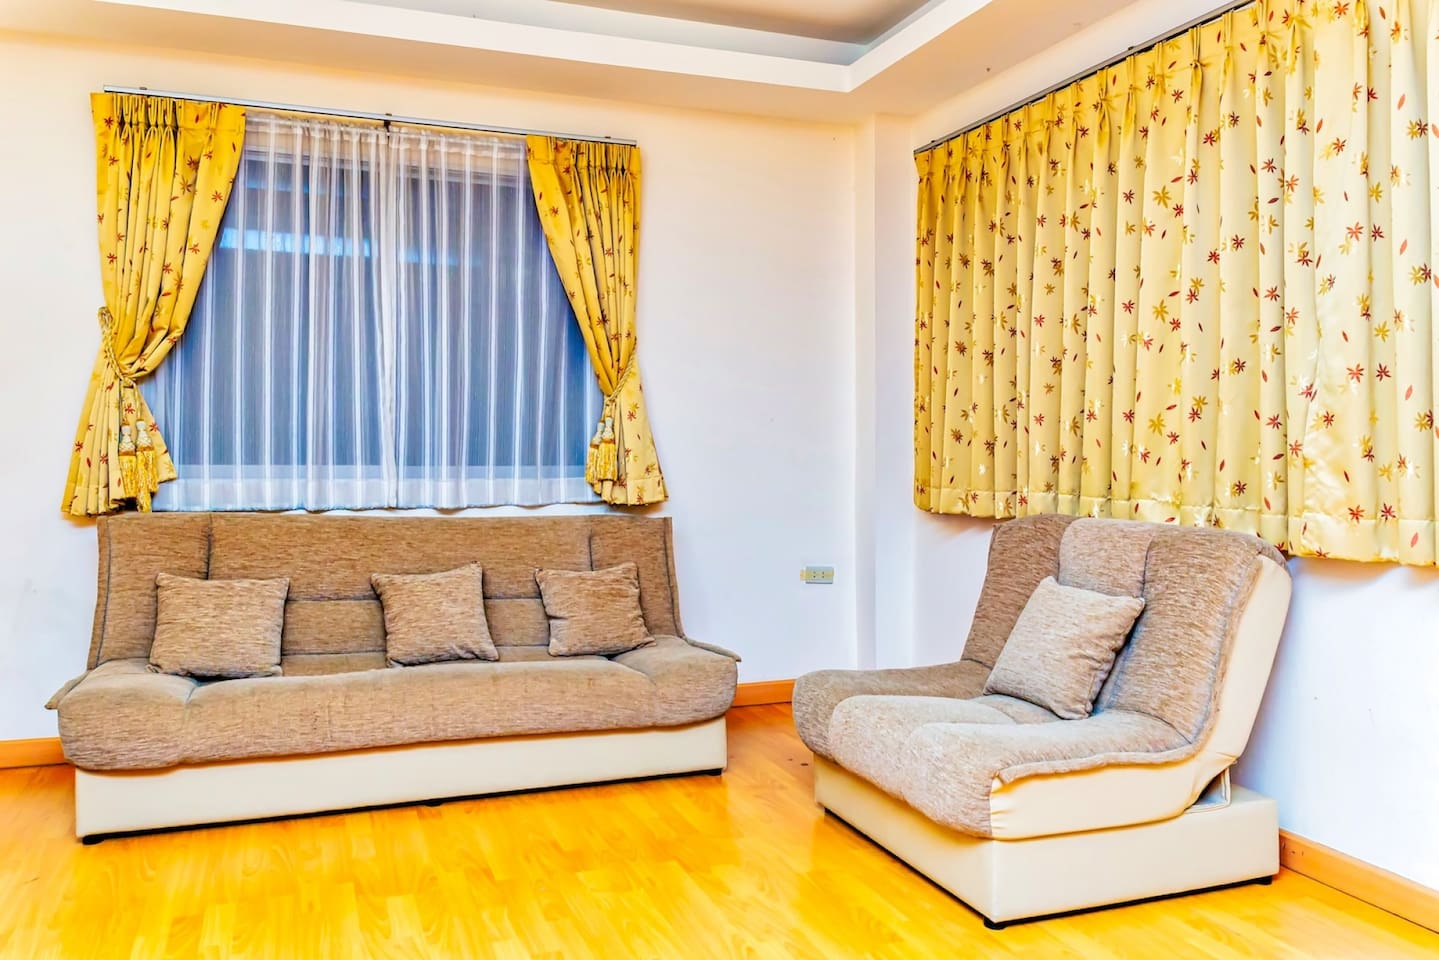 Apartment New 5 King Room in the Center of Pattaya City  Best area  photo 18752403